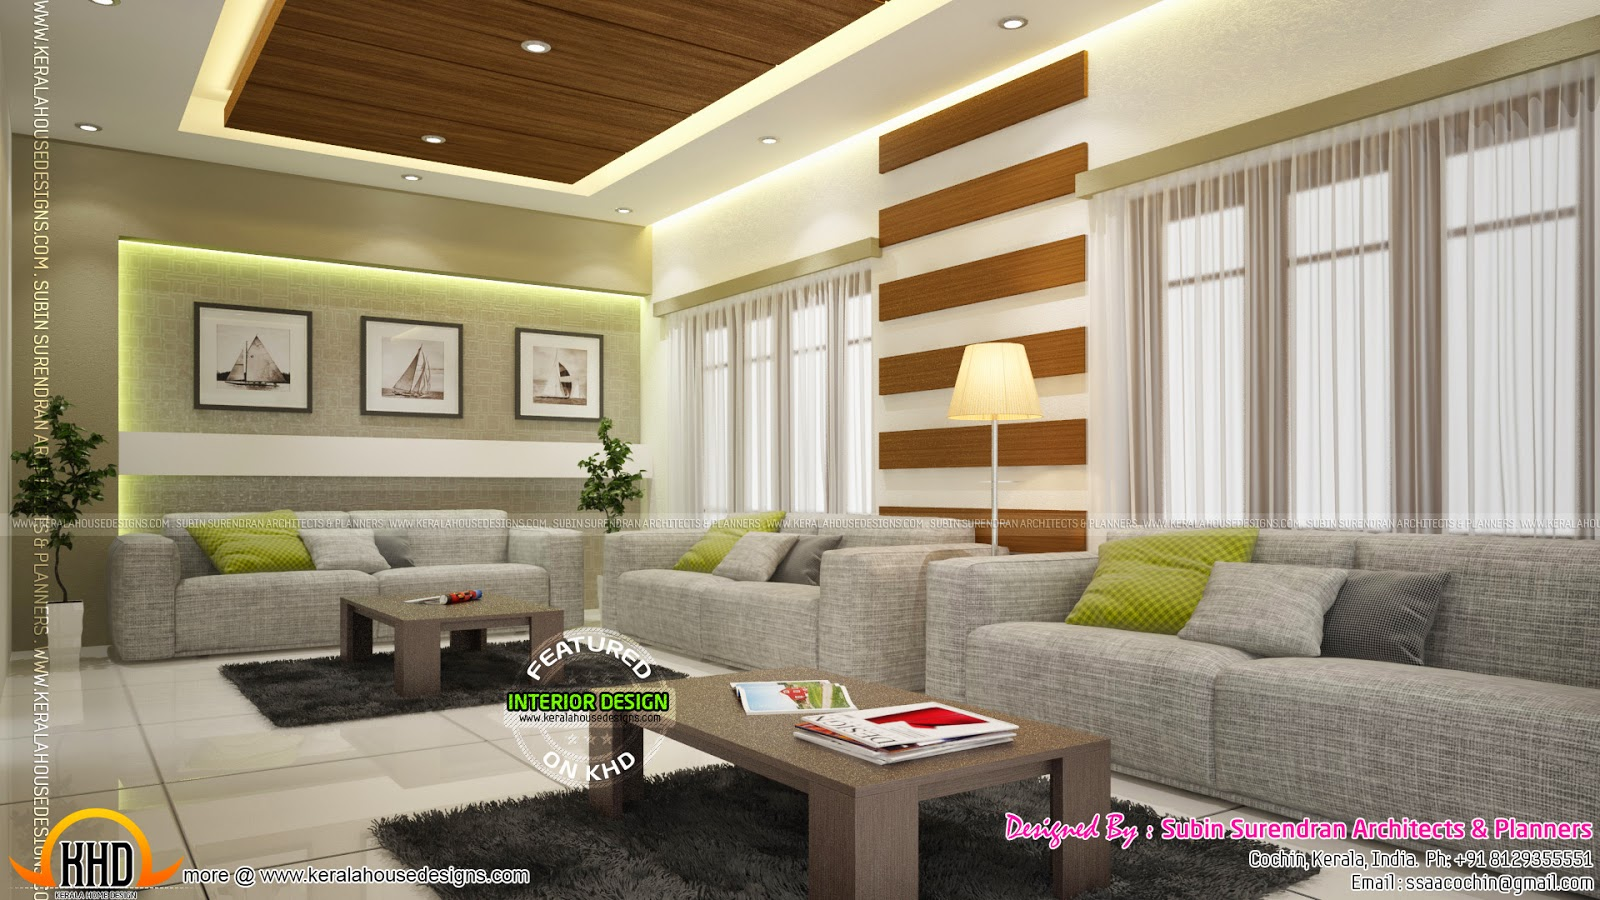 Beautiful home interior designs kerala home design and for Beautiful interior design of living room